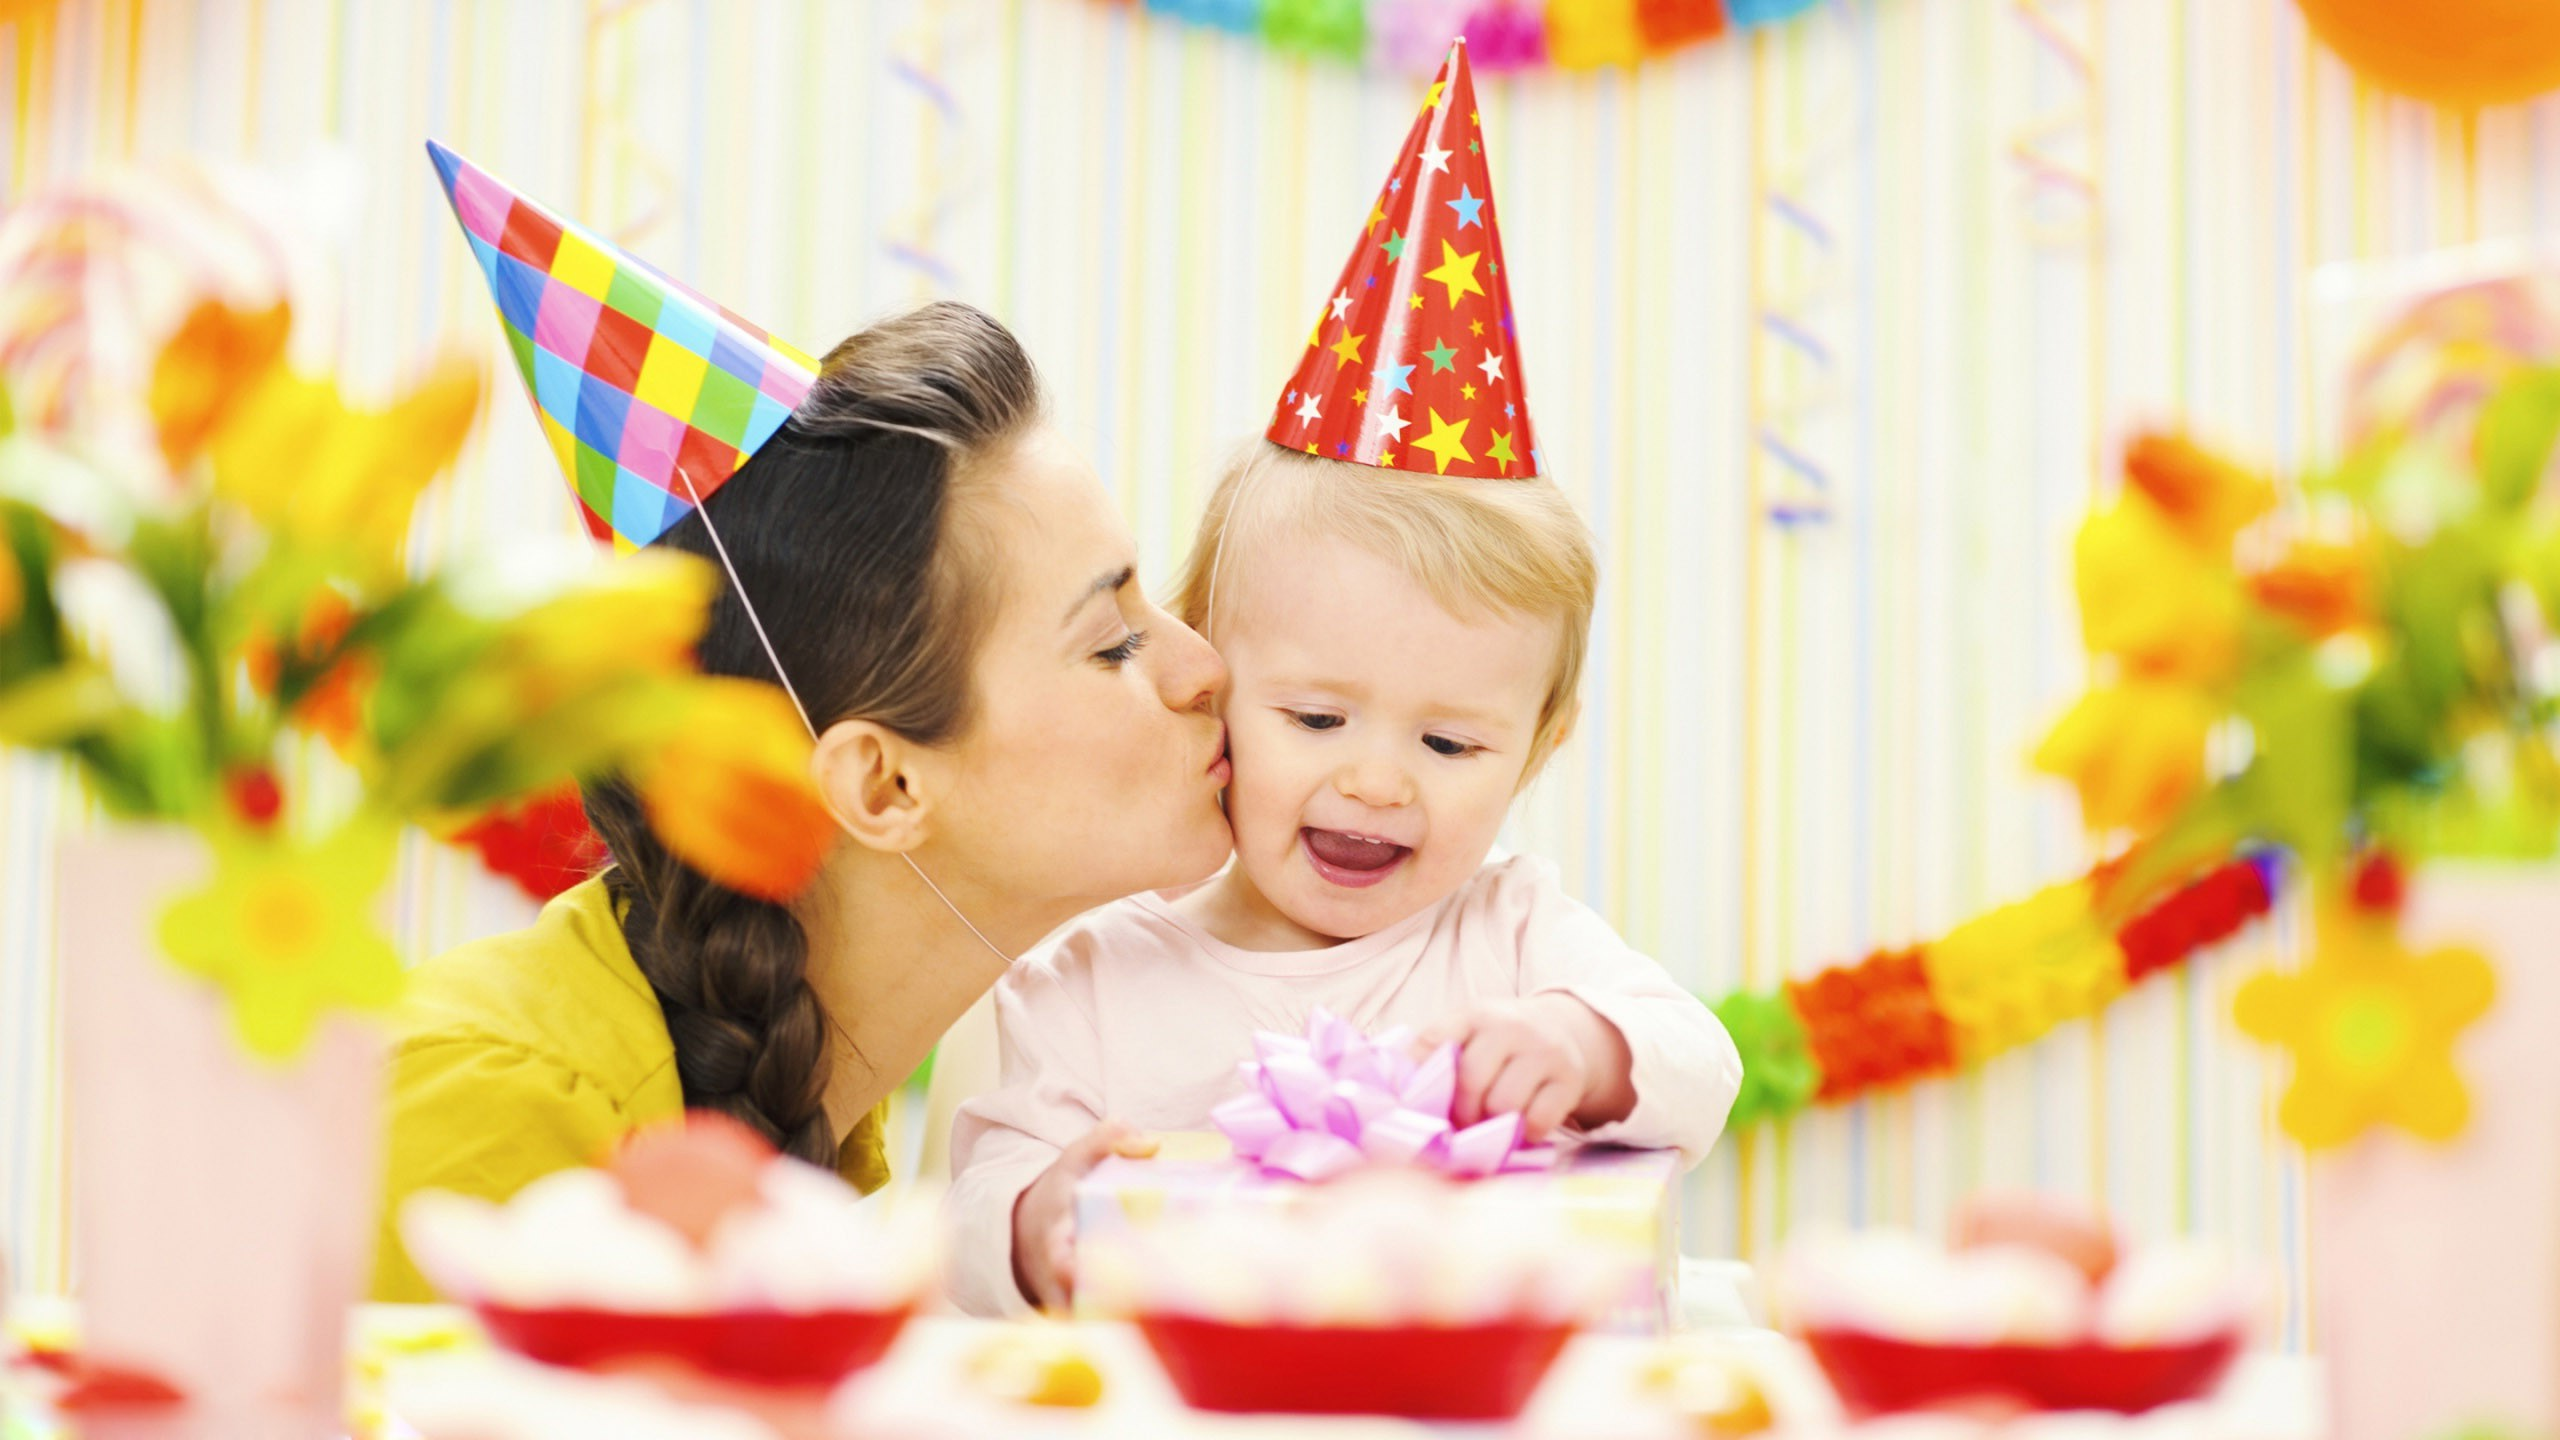 happy birthday cute baby image ; Happy-Birthday-Celebrate-Cute-Baby-With-Mom-Full-HD-Wallpapers-e1457881313642